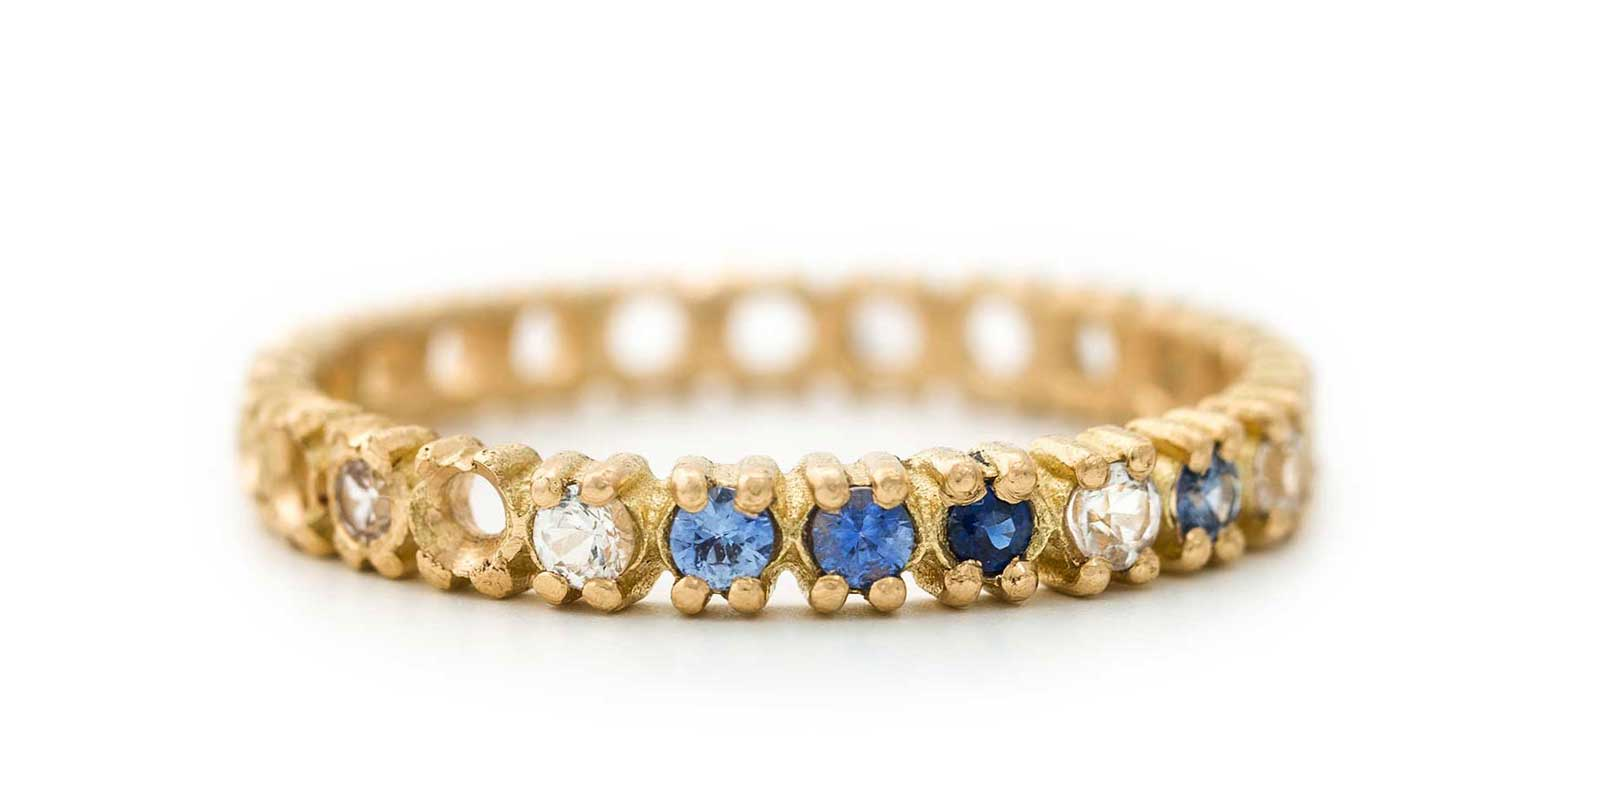 Half Eternity Ring – Blue Sapphire and White Diamond, 18ct Yellow Gold